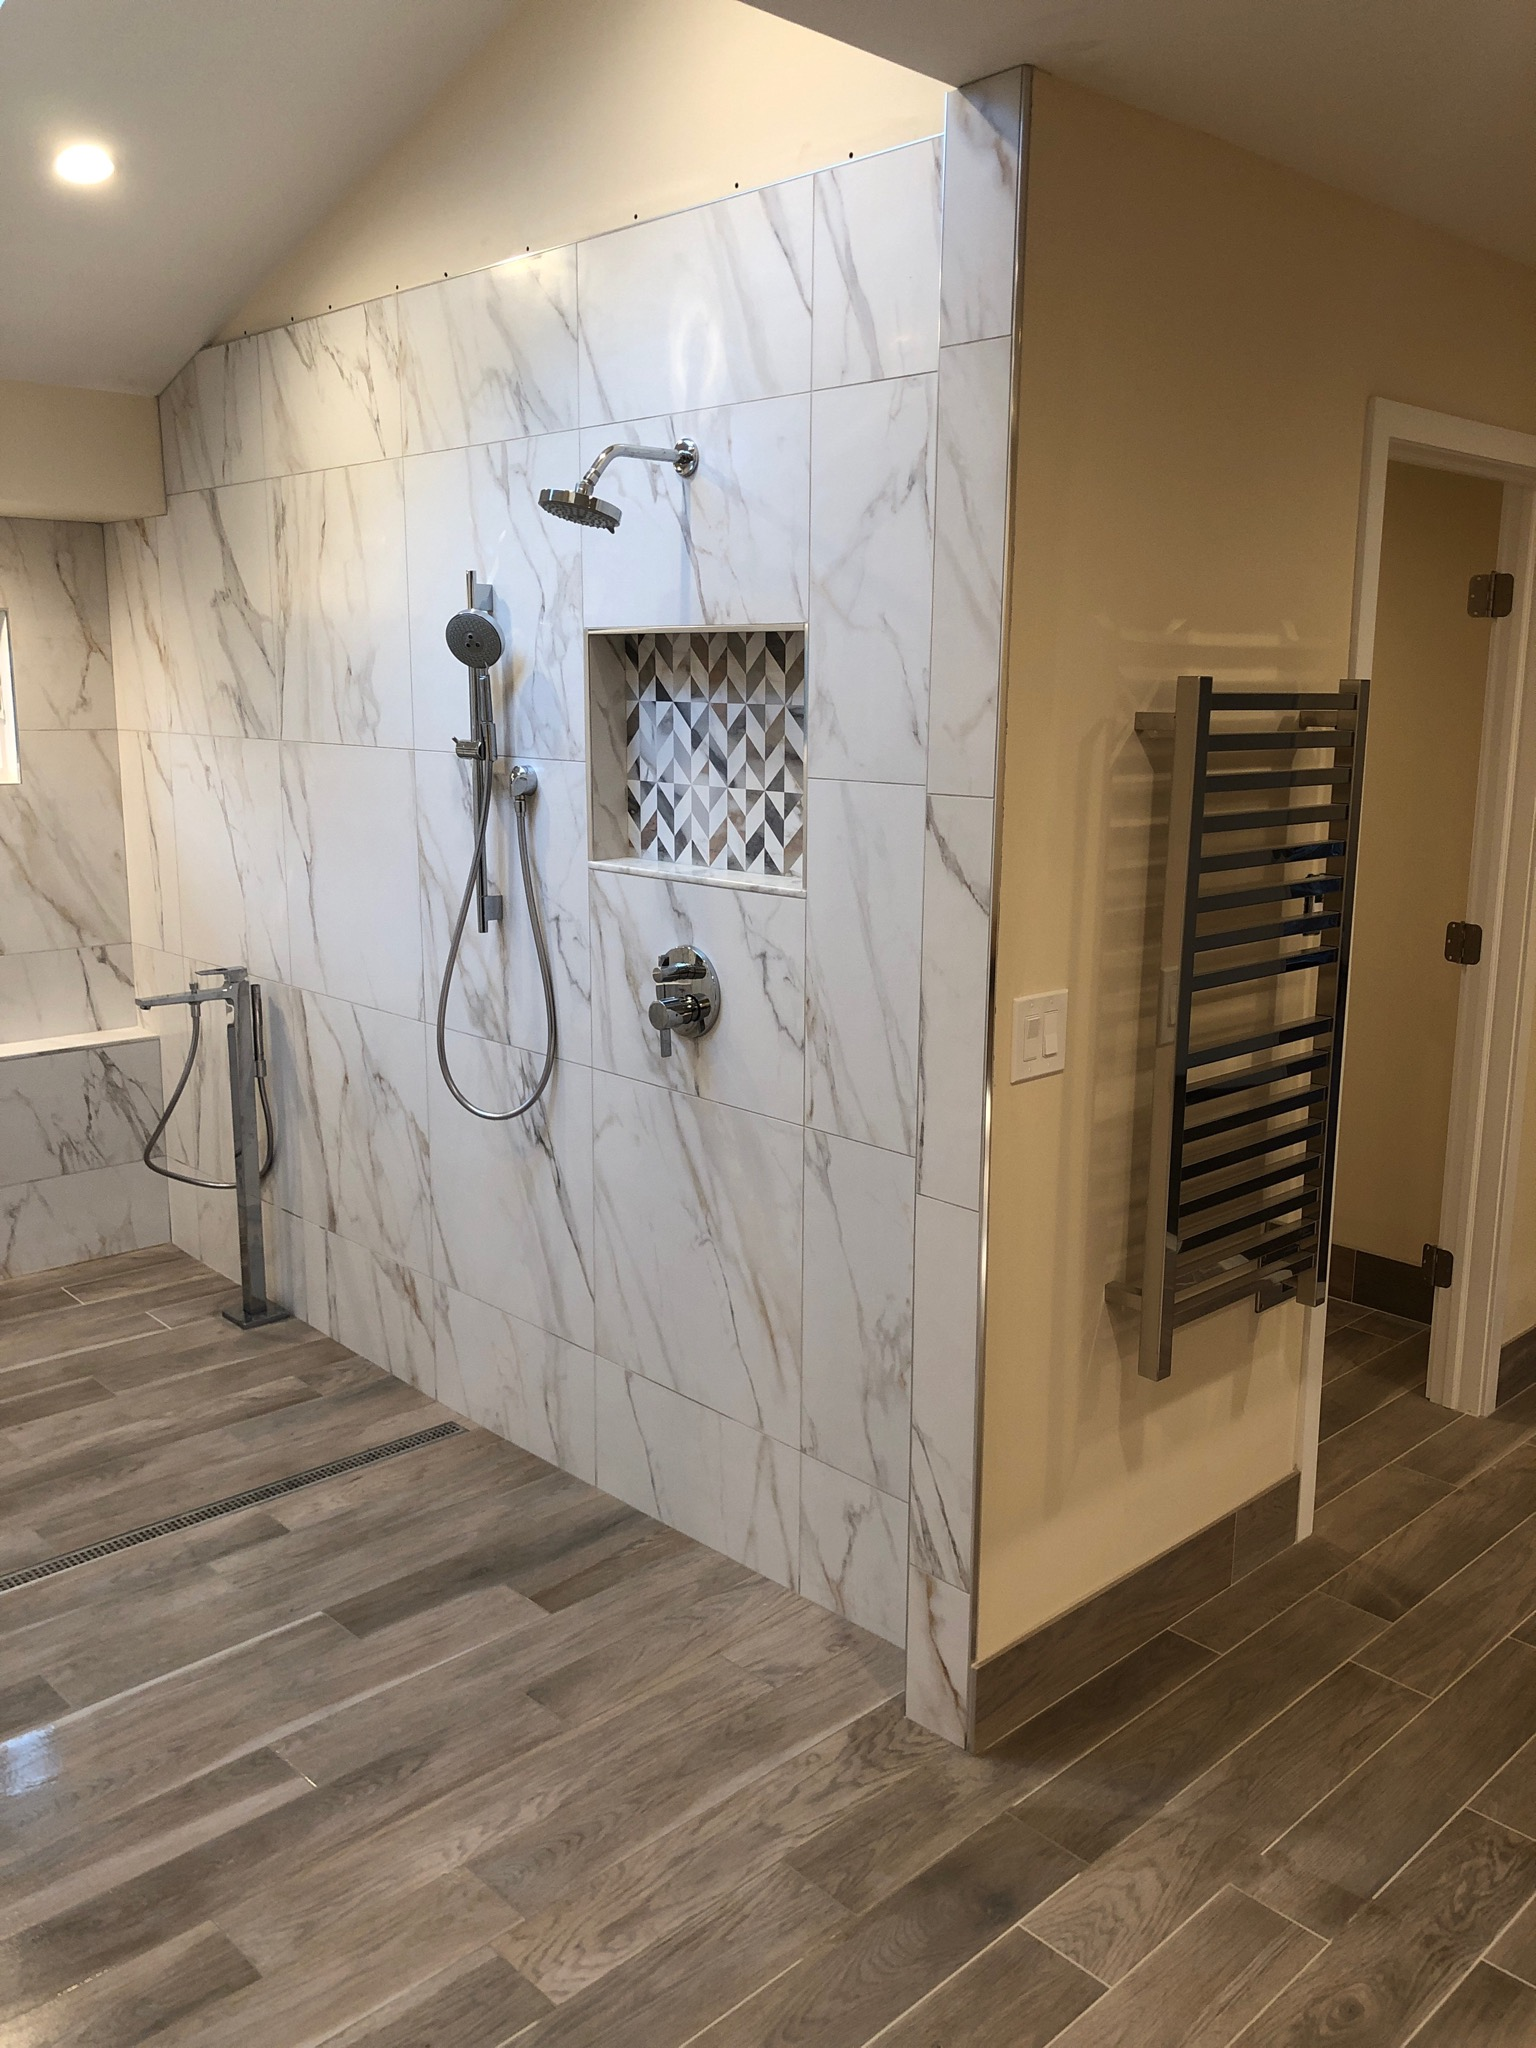 Custom towel warmer and shower controls, installed and ready for use.